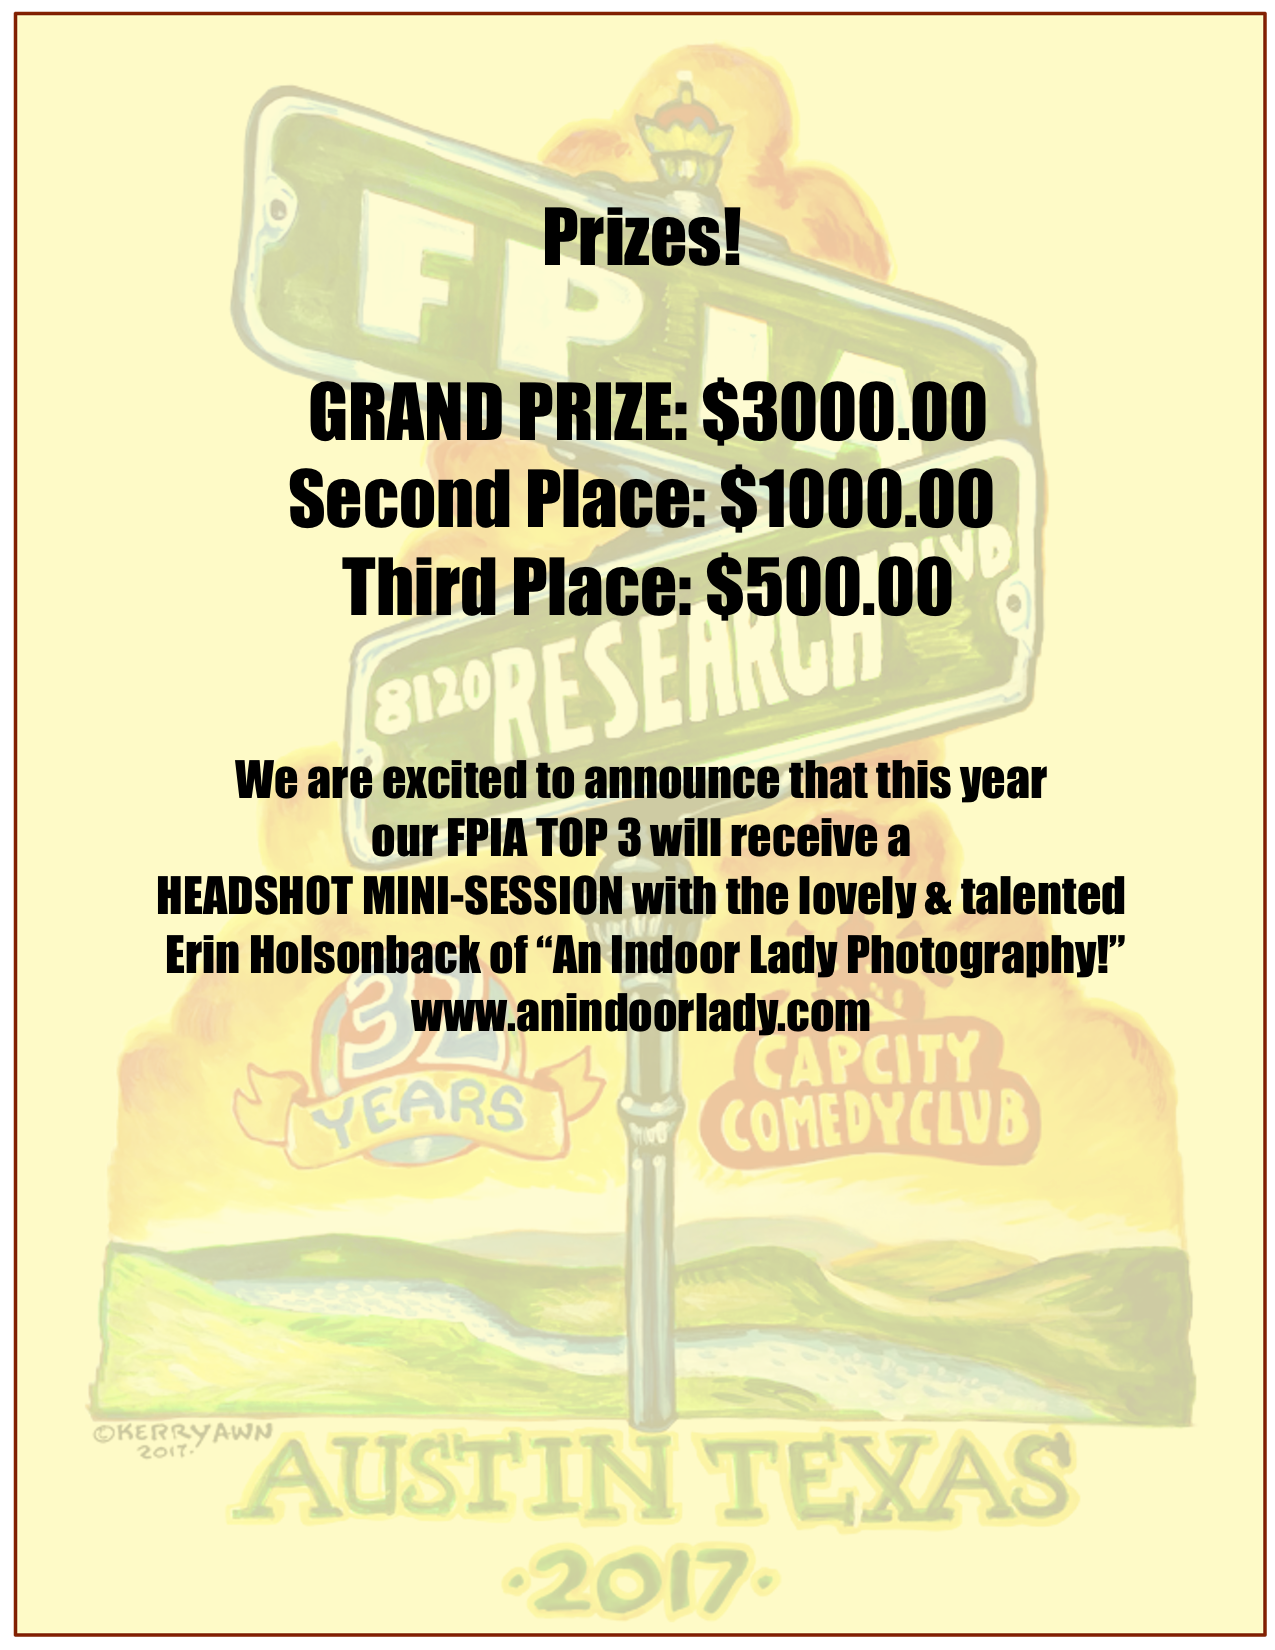 Banner Image with Prize information. Prize information also listed above in text.